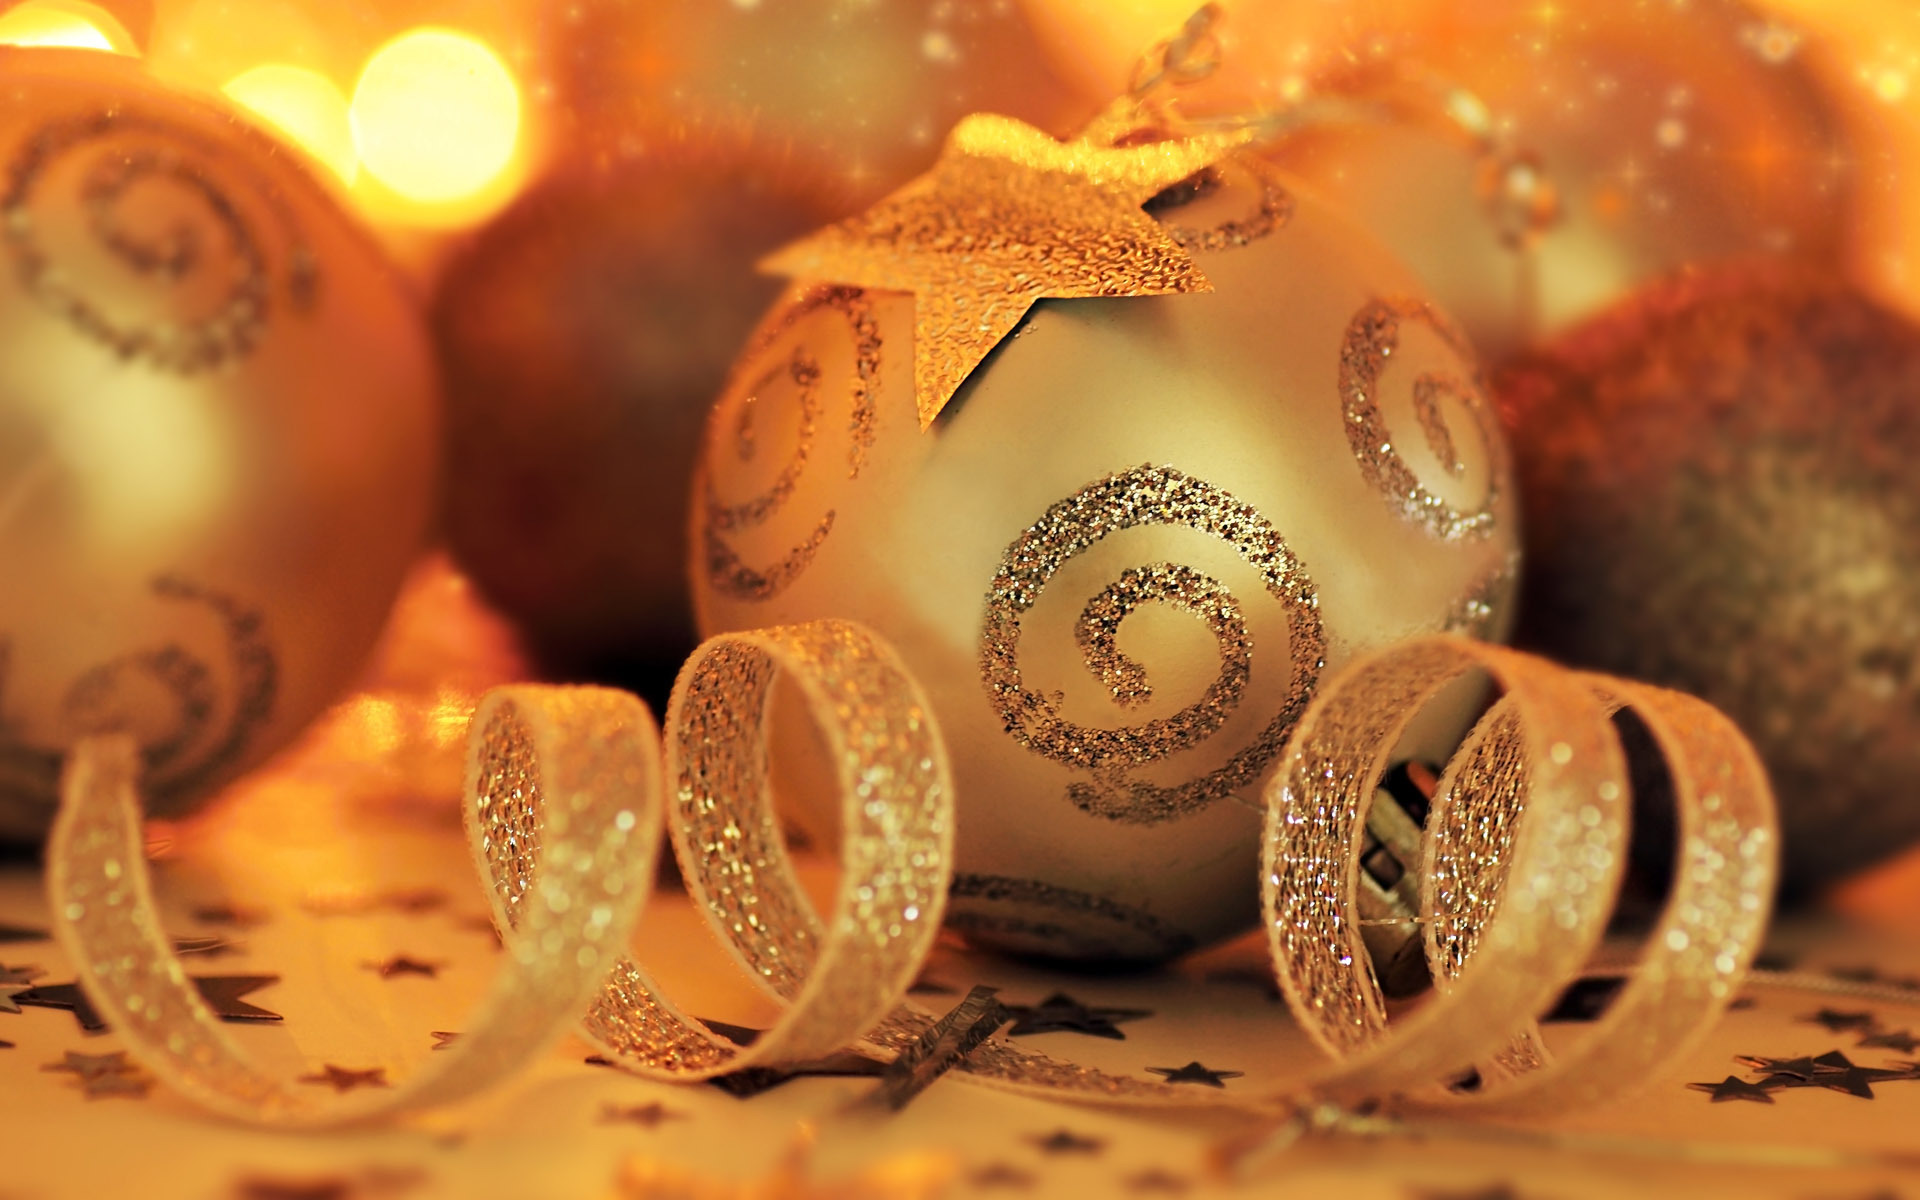 23164 download wallpaper Holidays, New Year, Christmas, Xmas screensavers and pictures for free